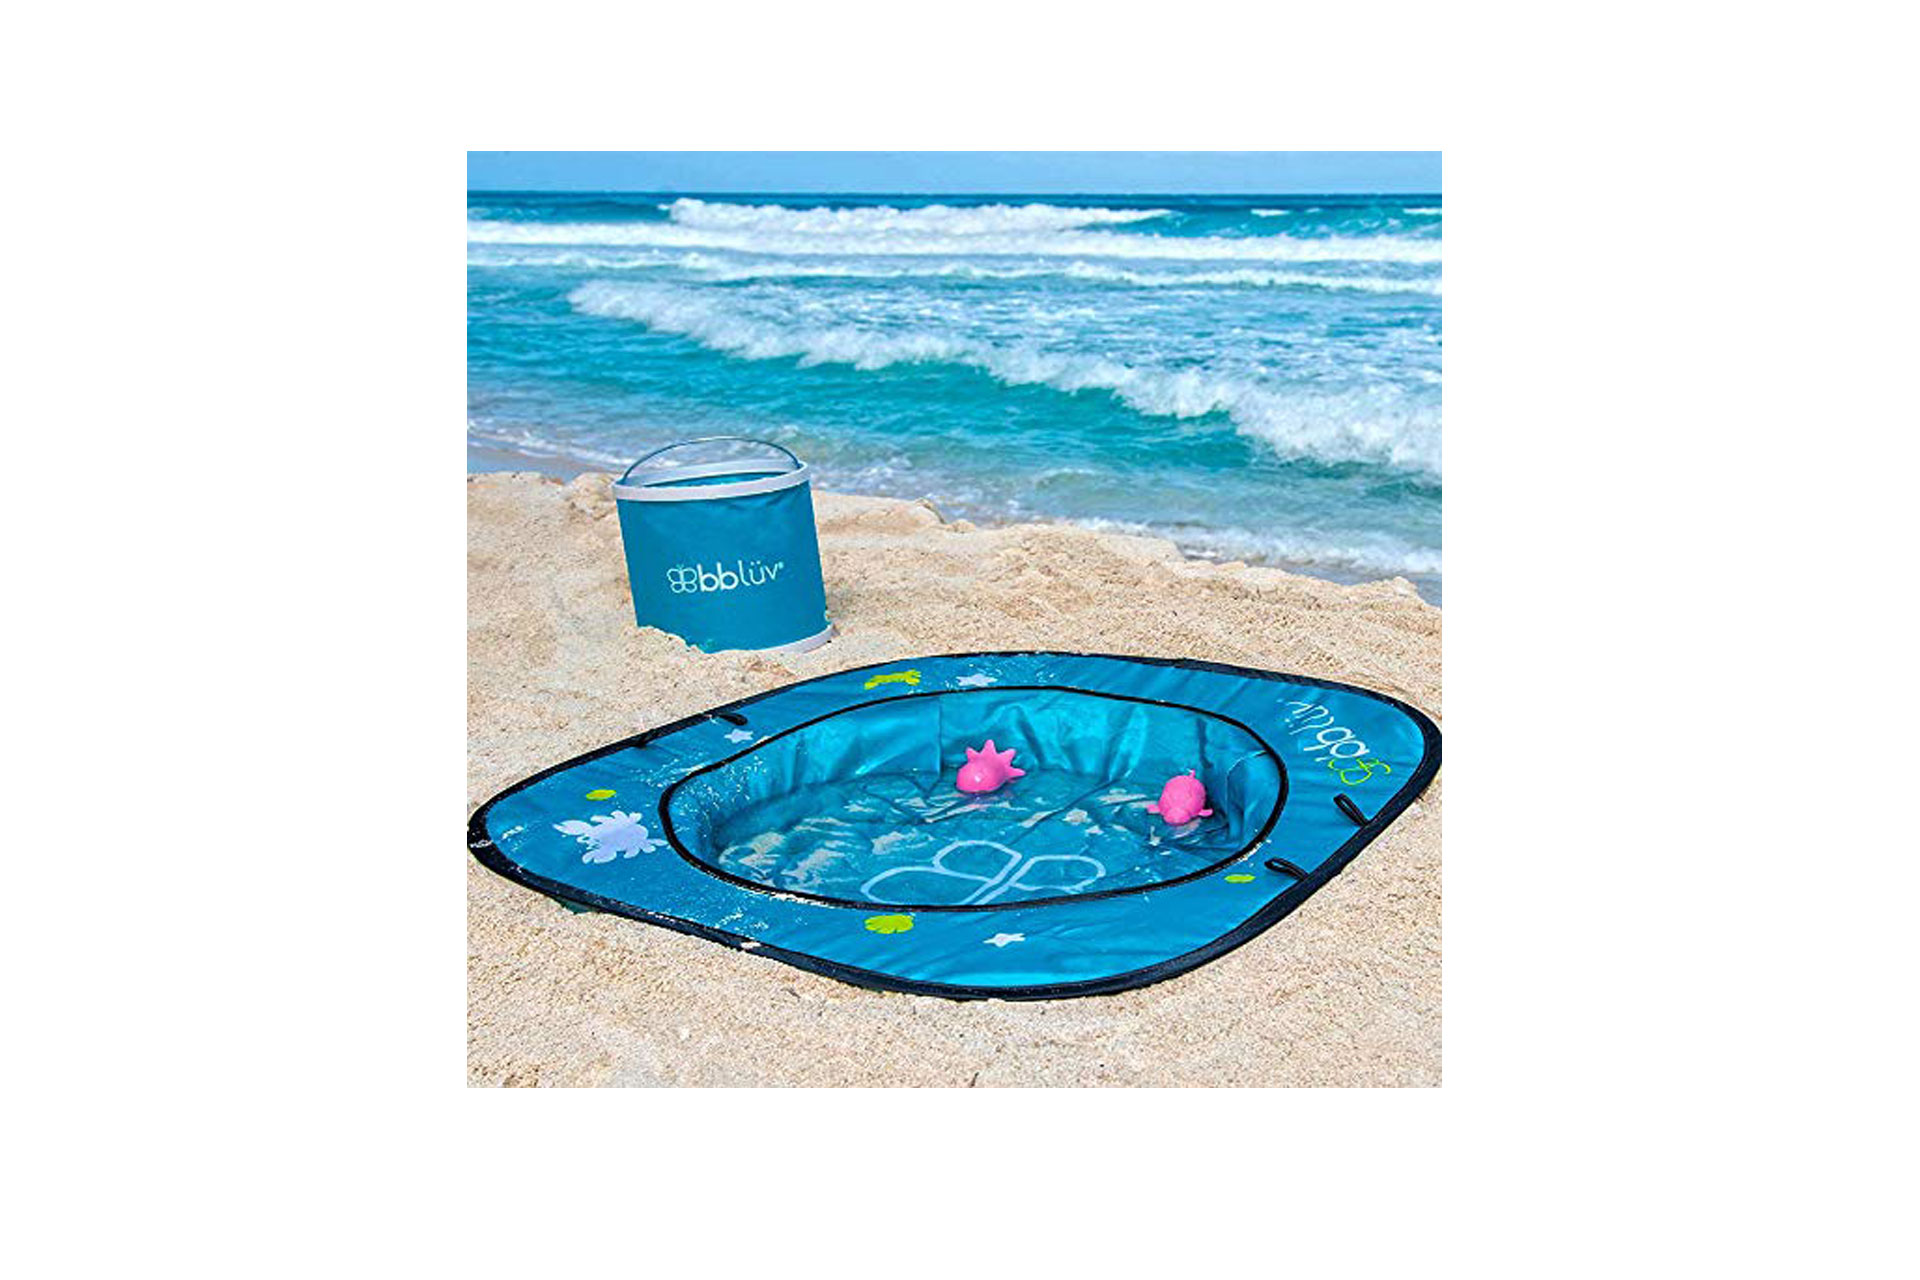 Jacuzzi Pool Amazon What To Pack For The Caribbean 13 Essentials For Families